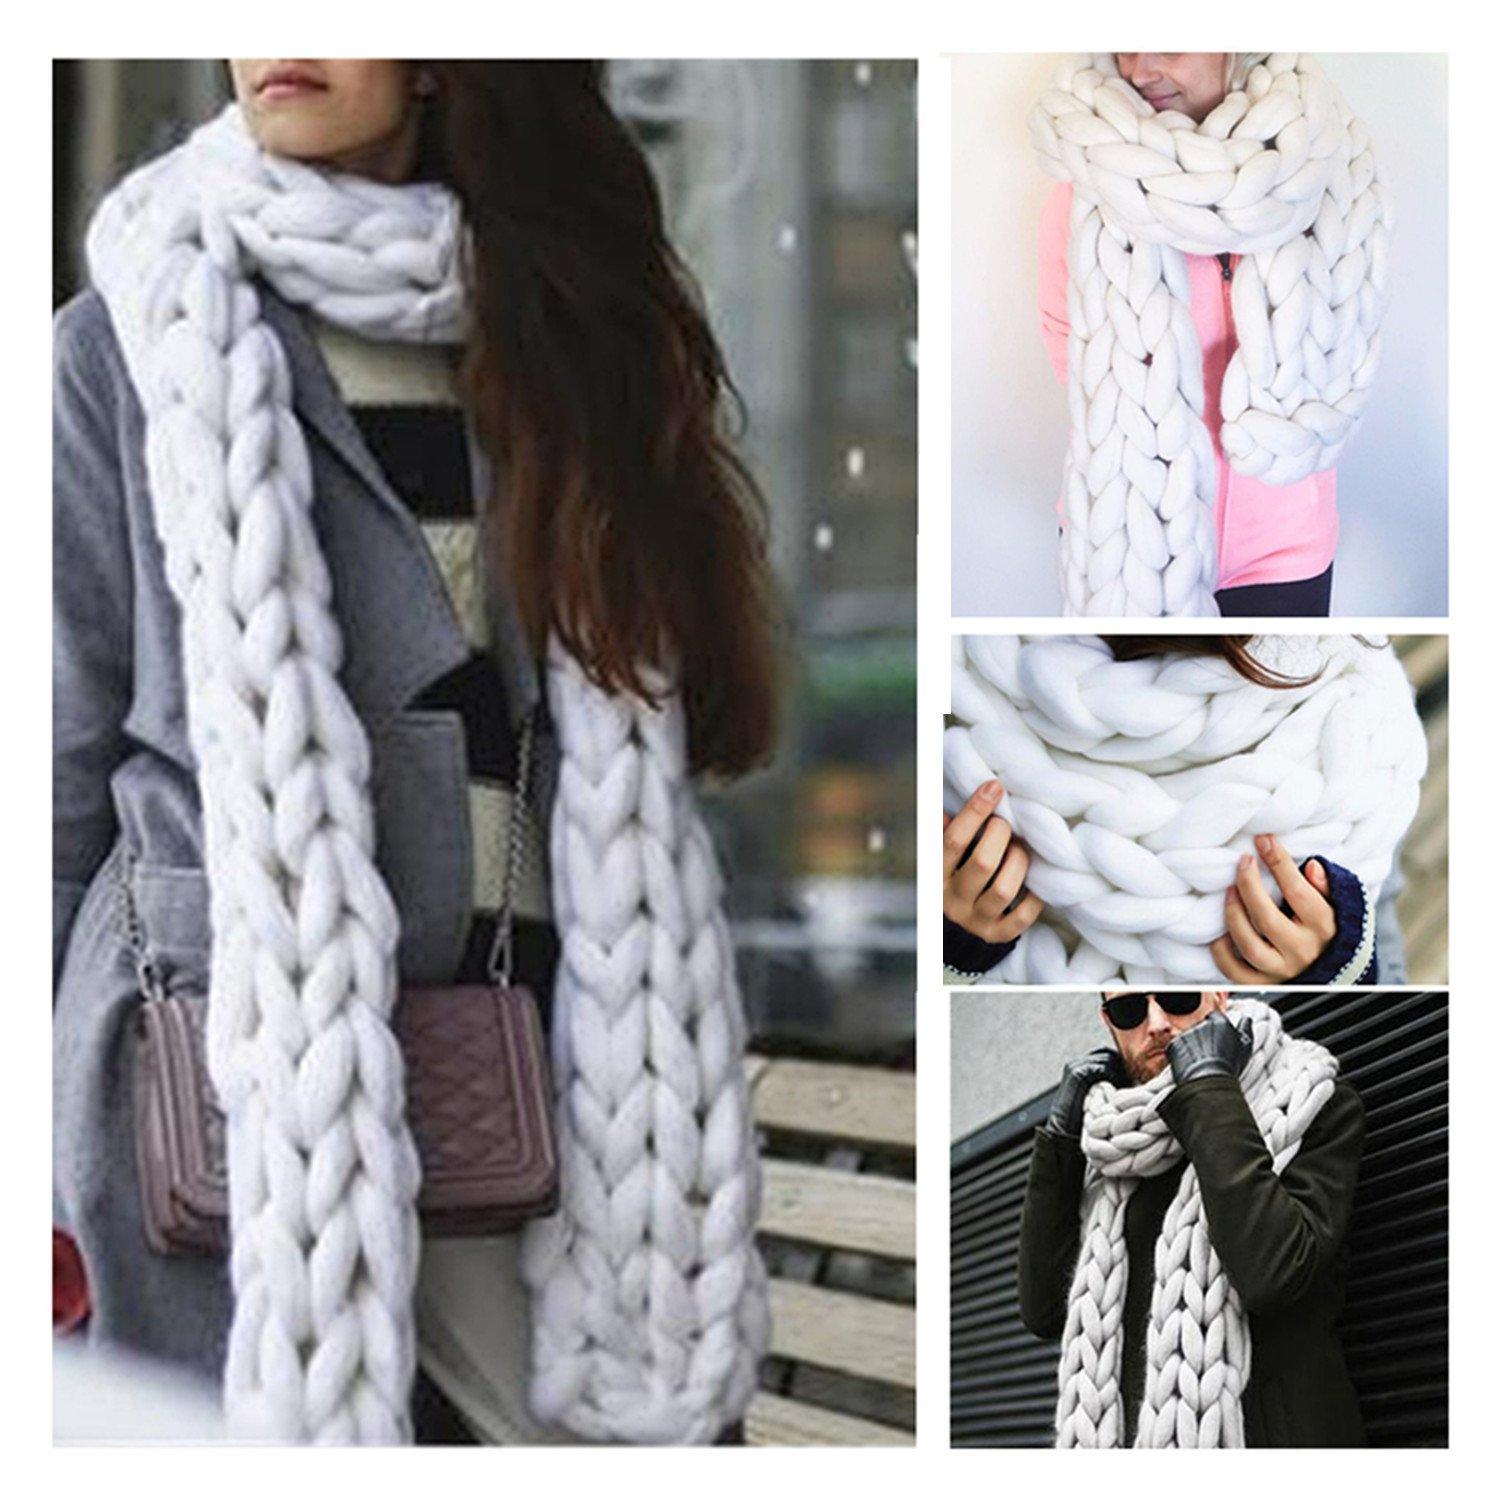 Handmade Chunky Wool Scarf Arm Knit Super Giant Wool Yarn Scarf Infinity Scarf Length 1.5m/59 inches (White)